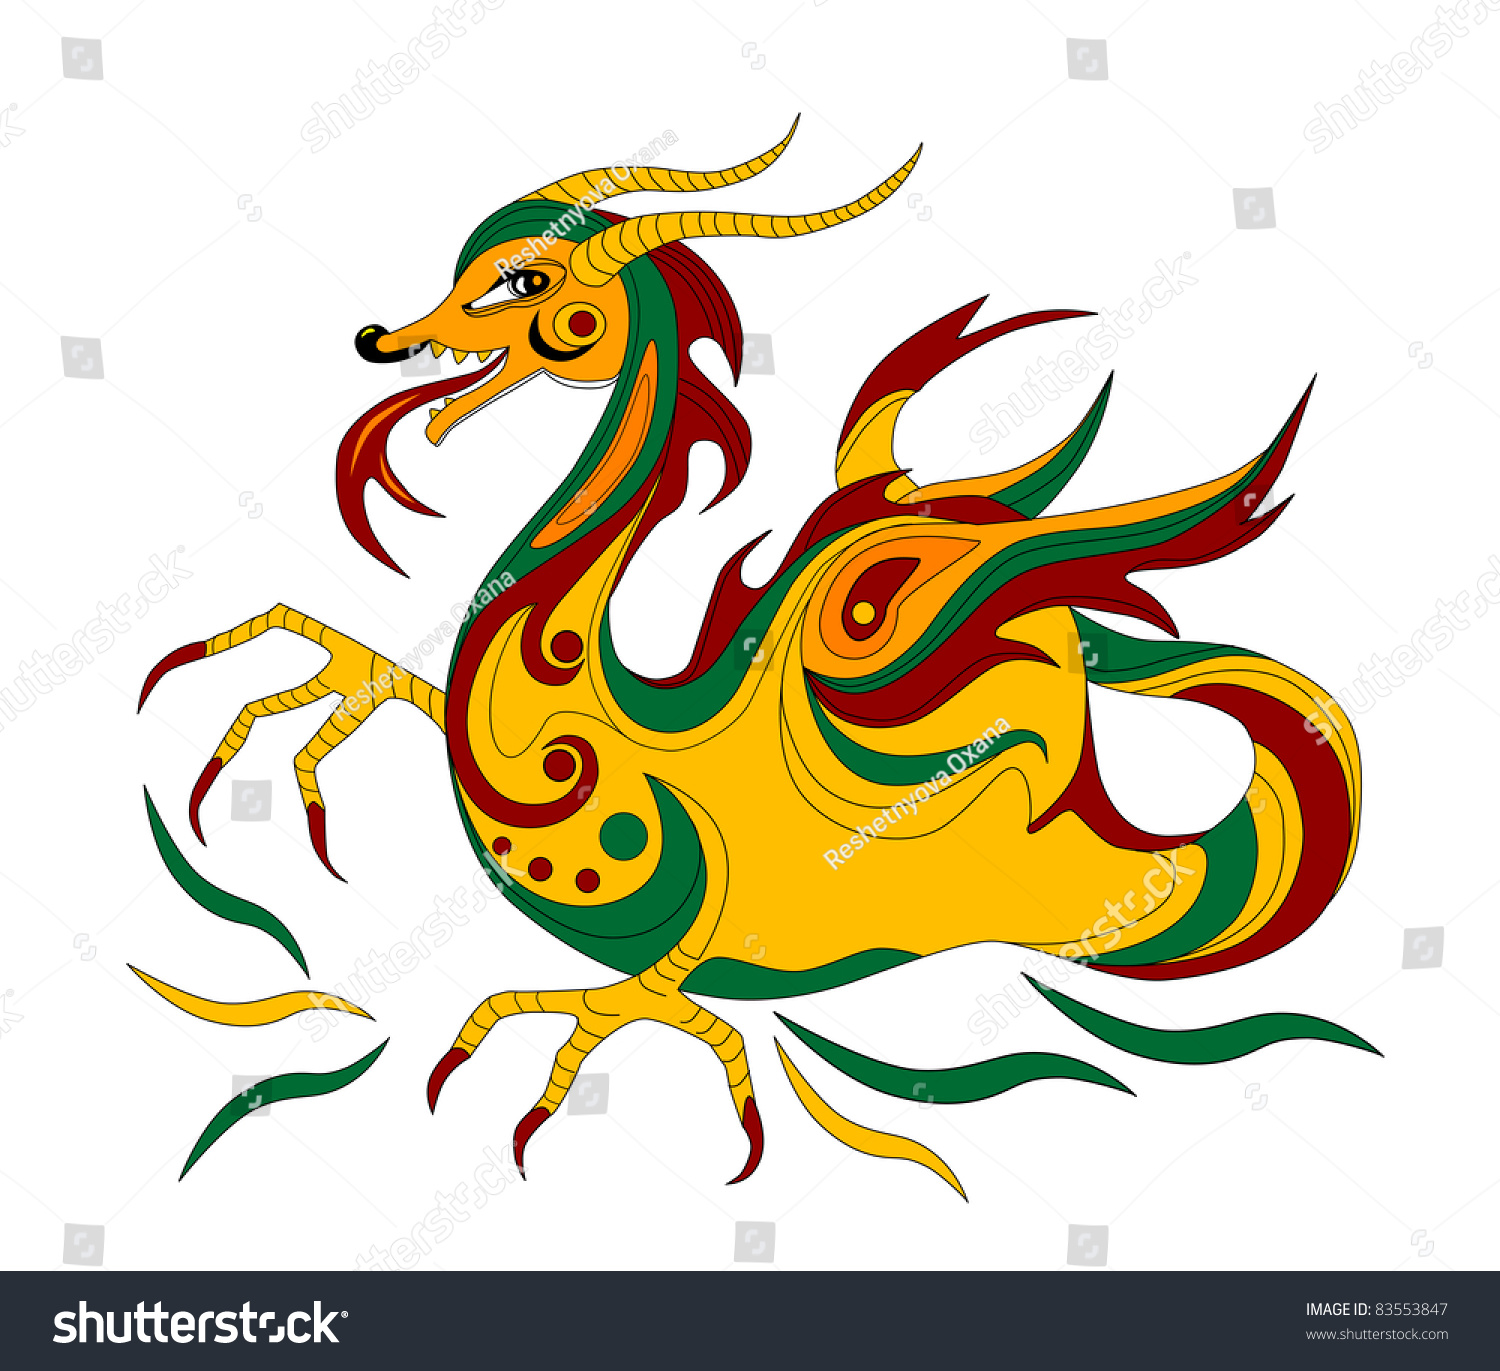 Funny chinese dragon symbol calendar 2012 stock illustration funny chinese dragon is symbol of calendar 2012 biocorpaavc